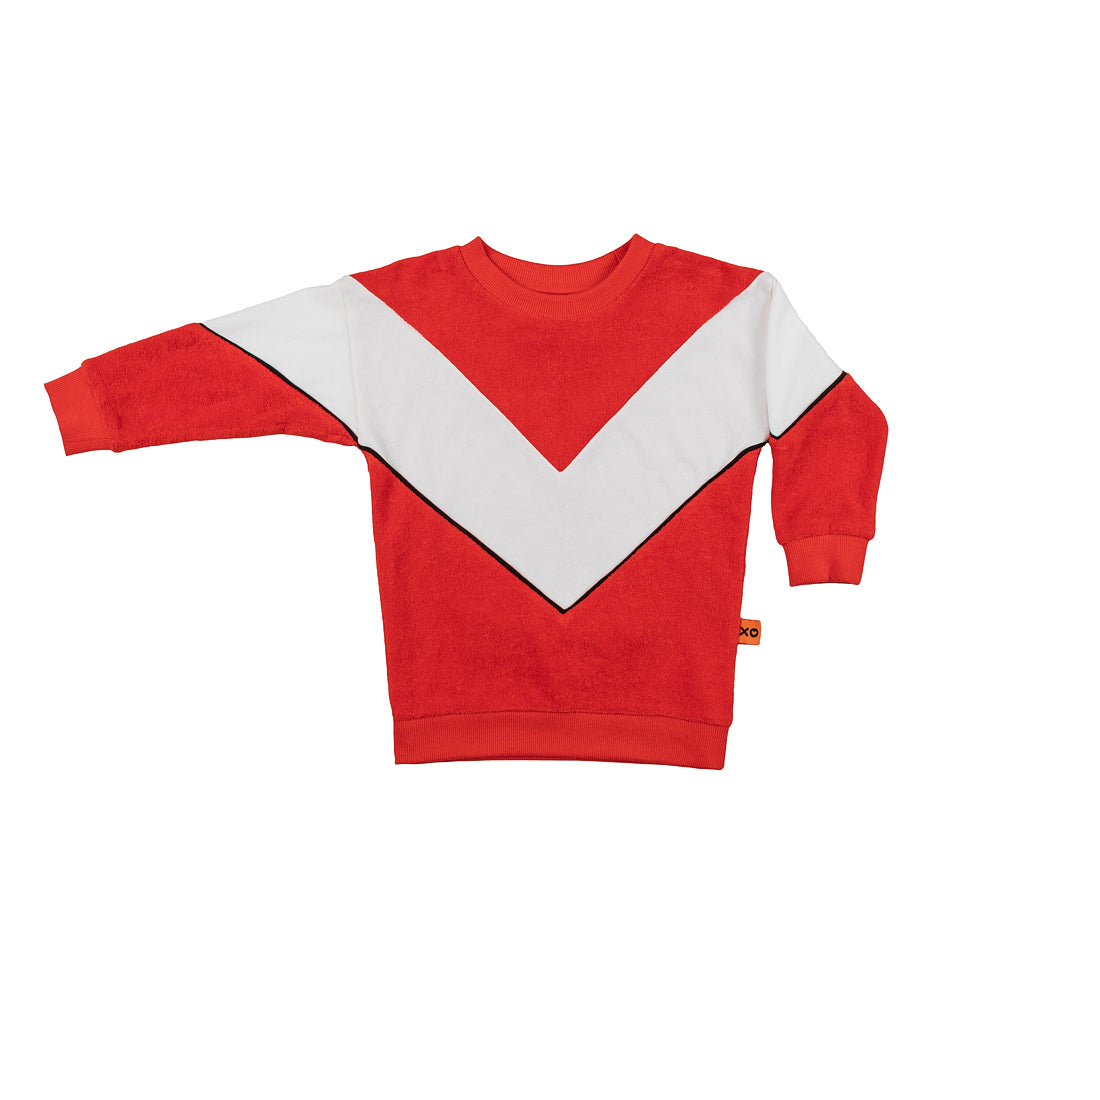 Red Organic Cotton Bold Arrow Kids Sweatshirt